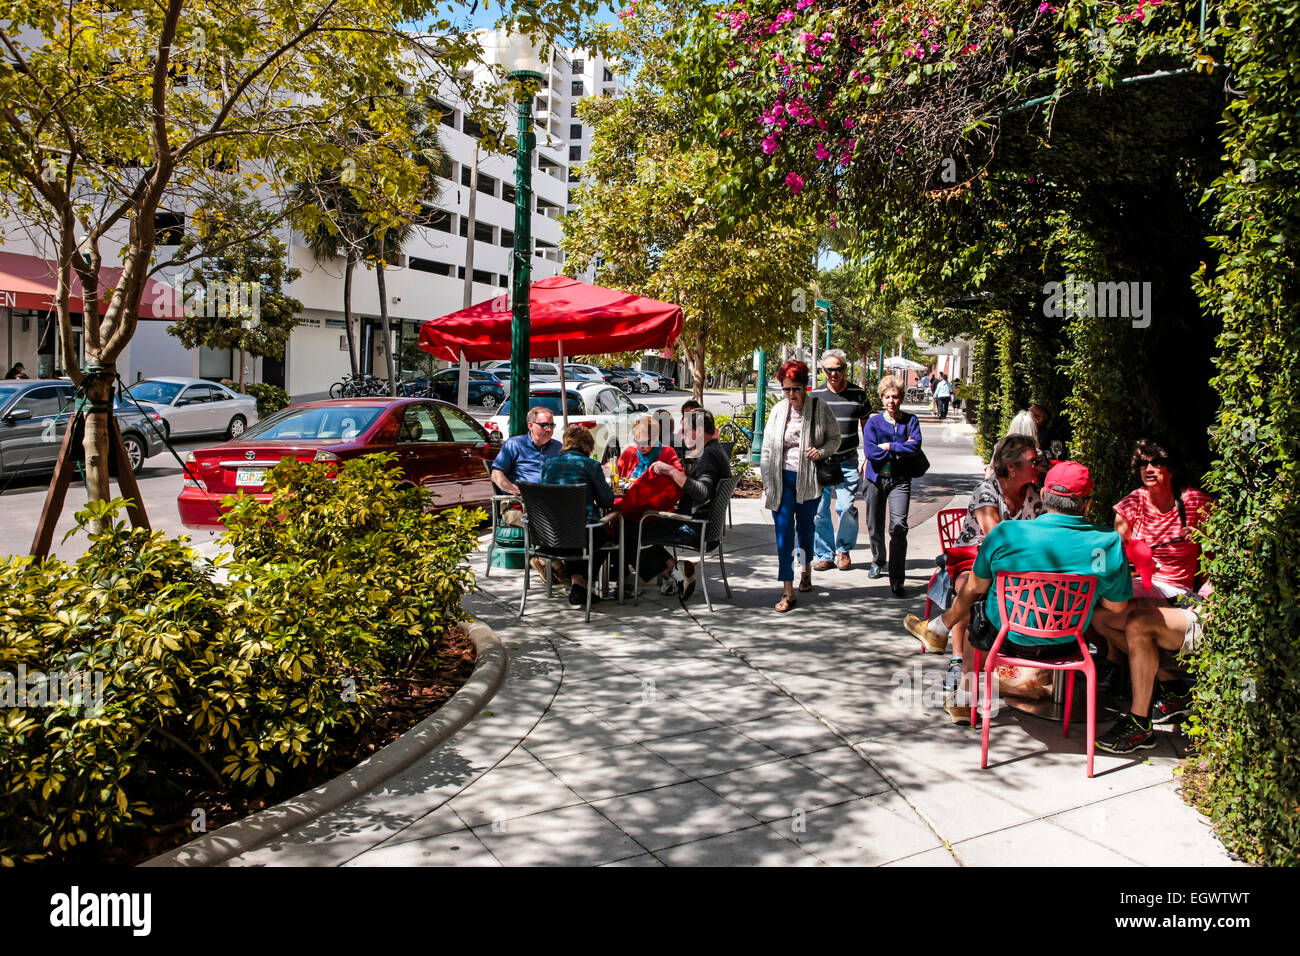 People relaxing, taking an early brunch outside in comfy chairs at a cafe/restaurant in downtown Sarasota during - Stock Image